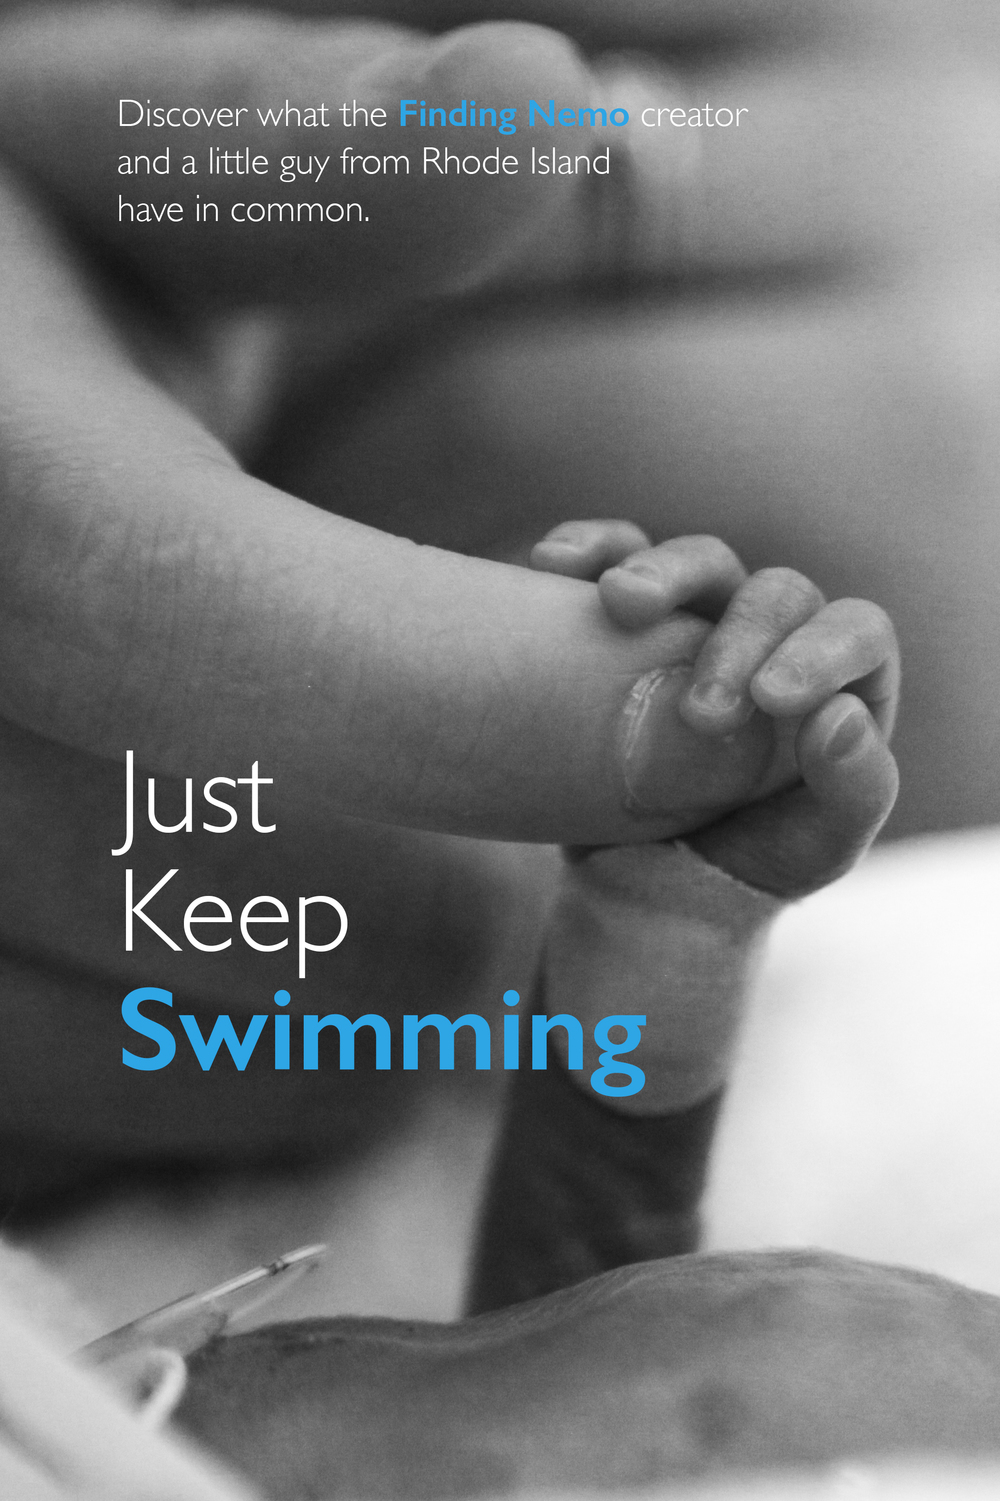 Just Keep Swimming BW-Contrast poster.jpg